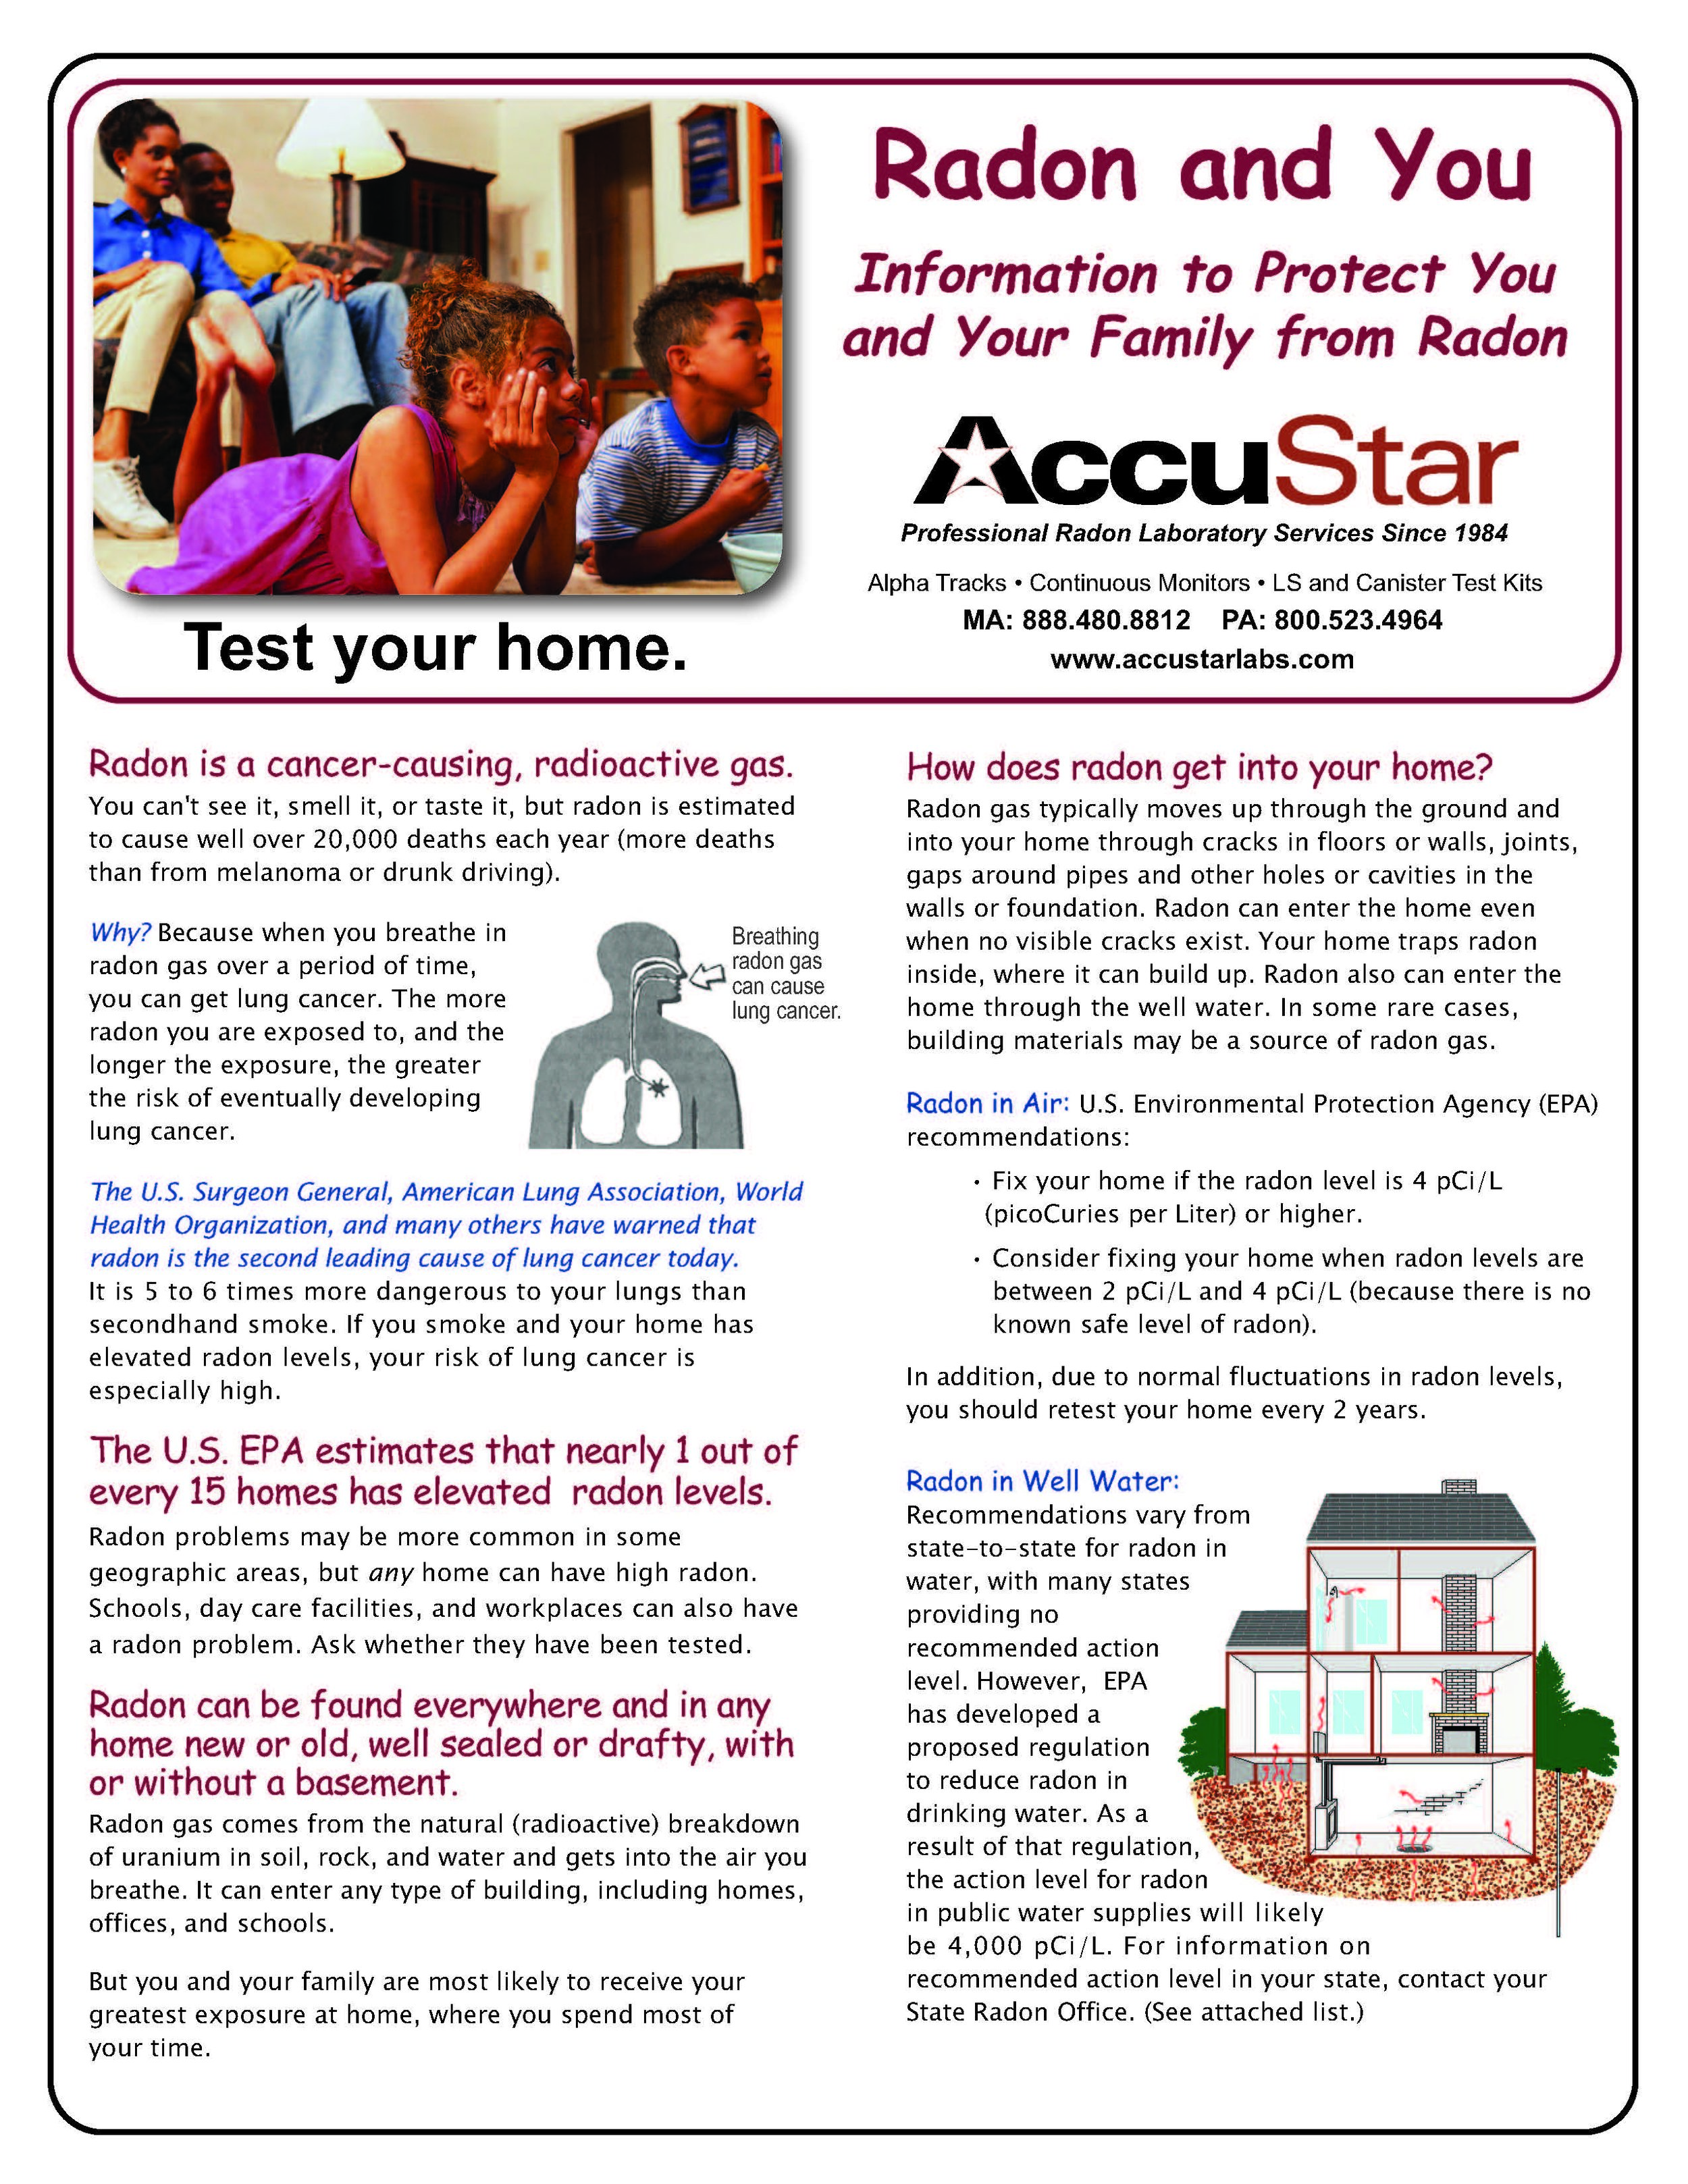 Radon_and_You_Information_Flyer_Page_1.jpg